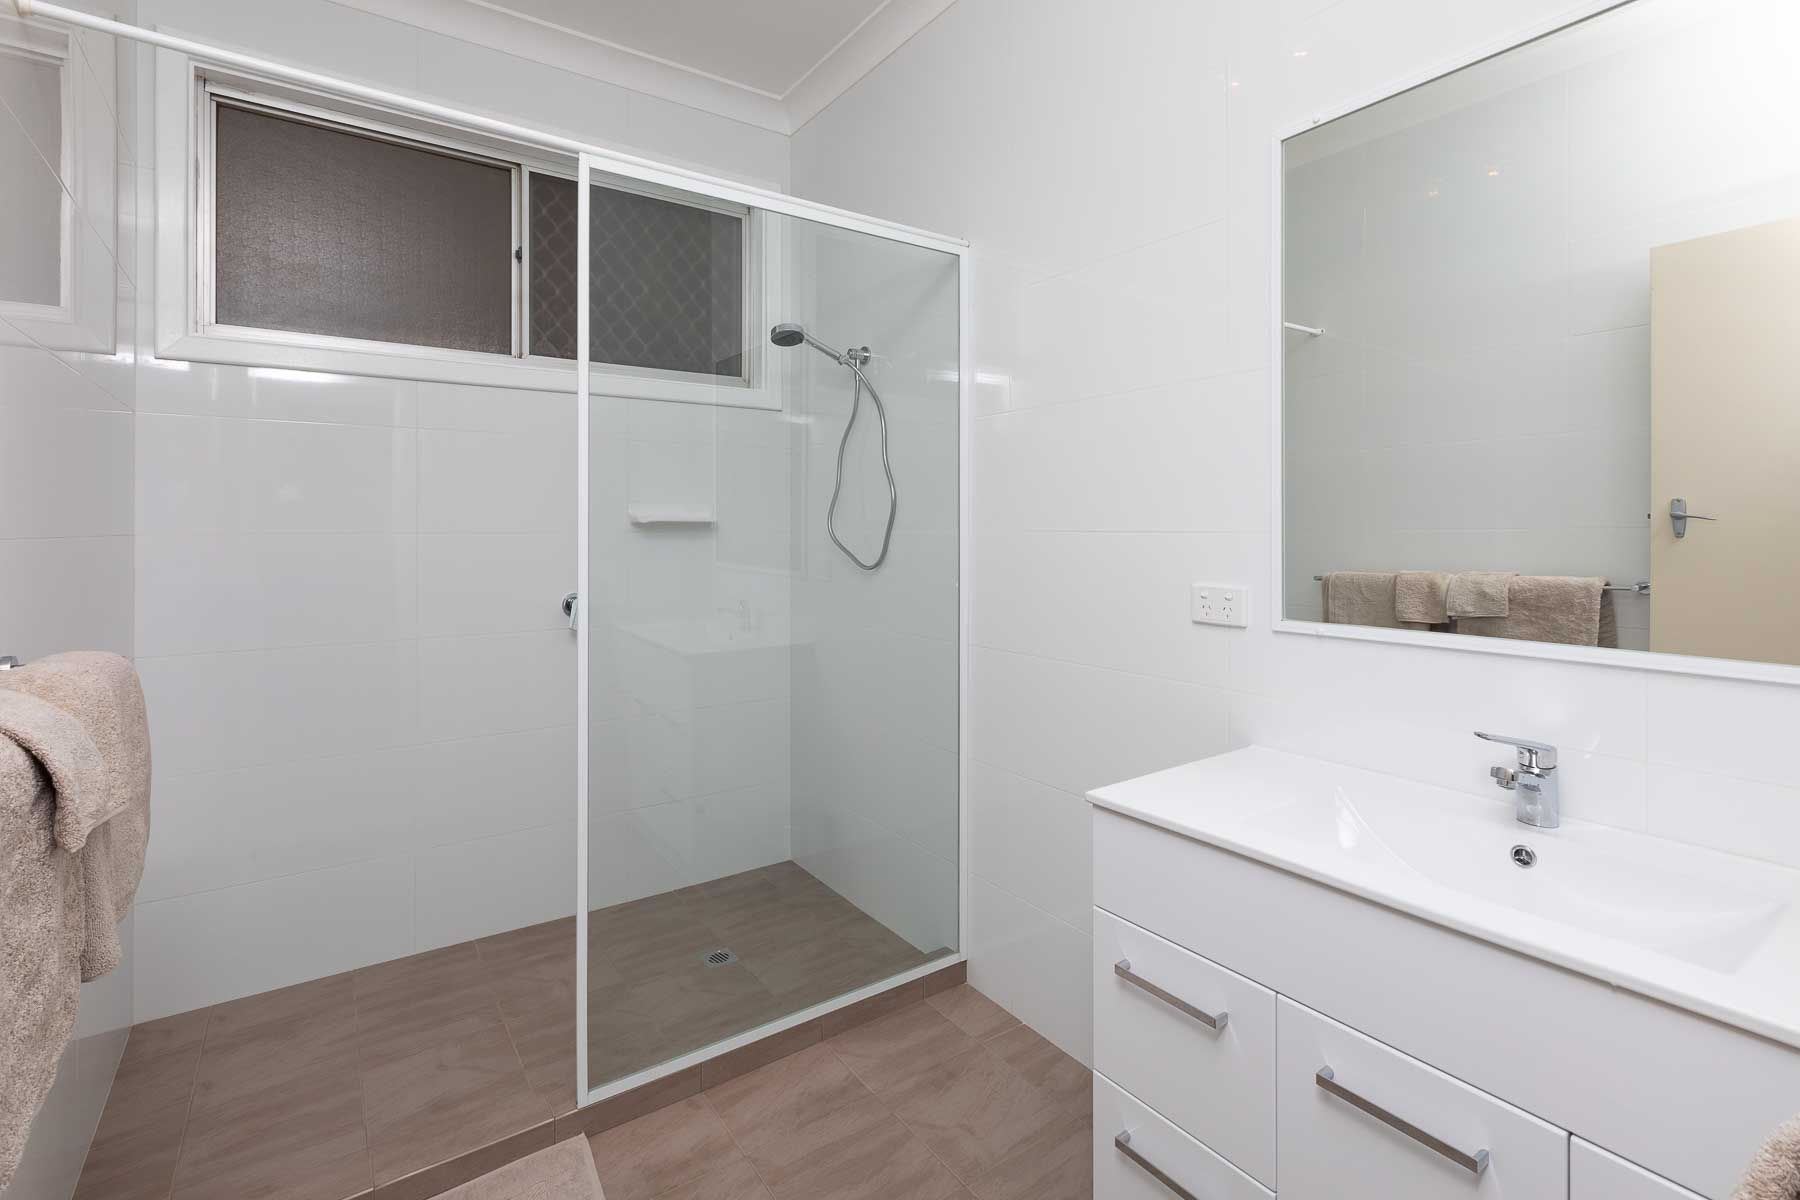 The newly renovated, fully tiled bathroom features a large shower and a vanity basin with mirror. The toilet is separate, and accessed through the laundry.